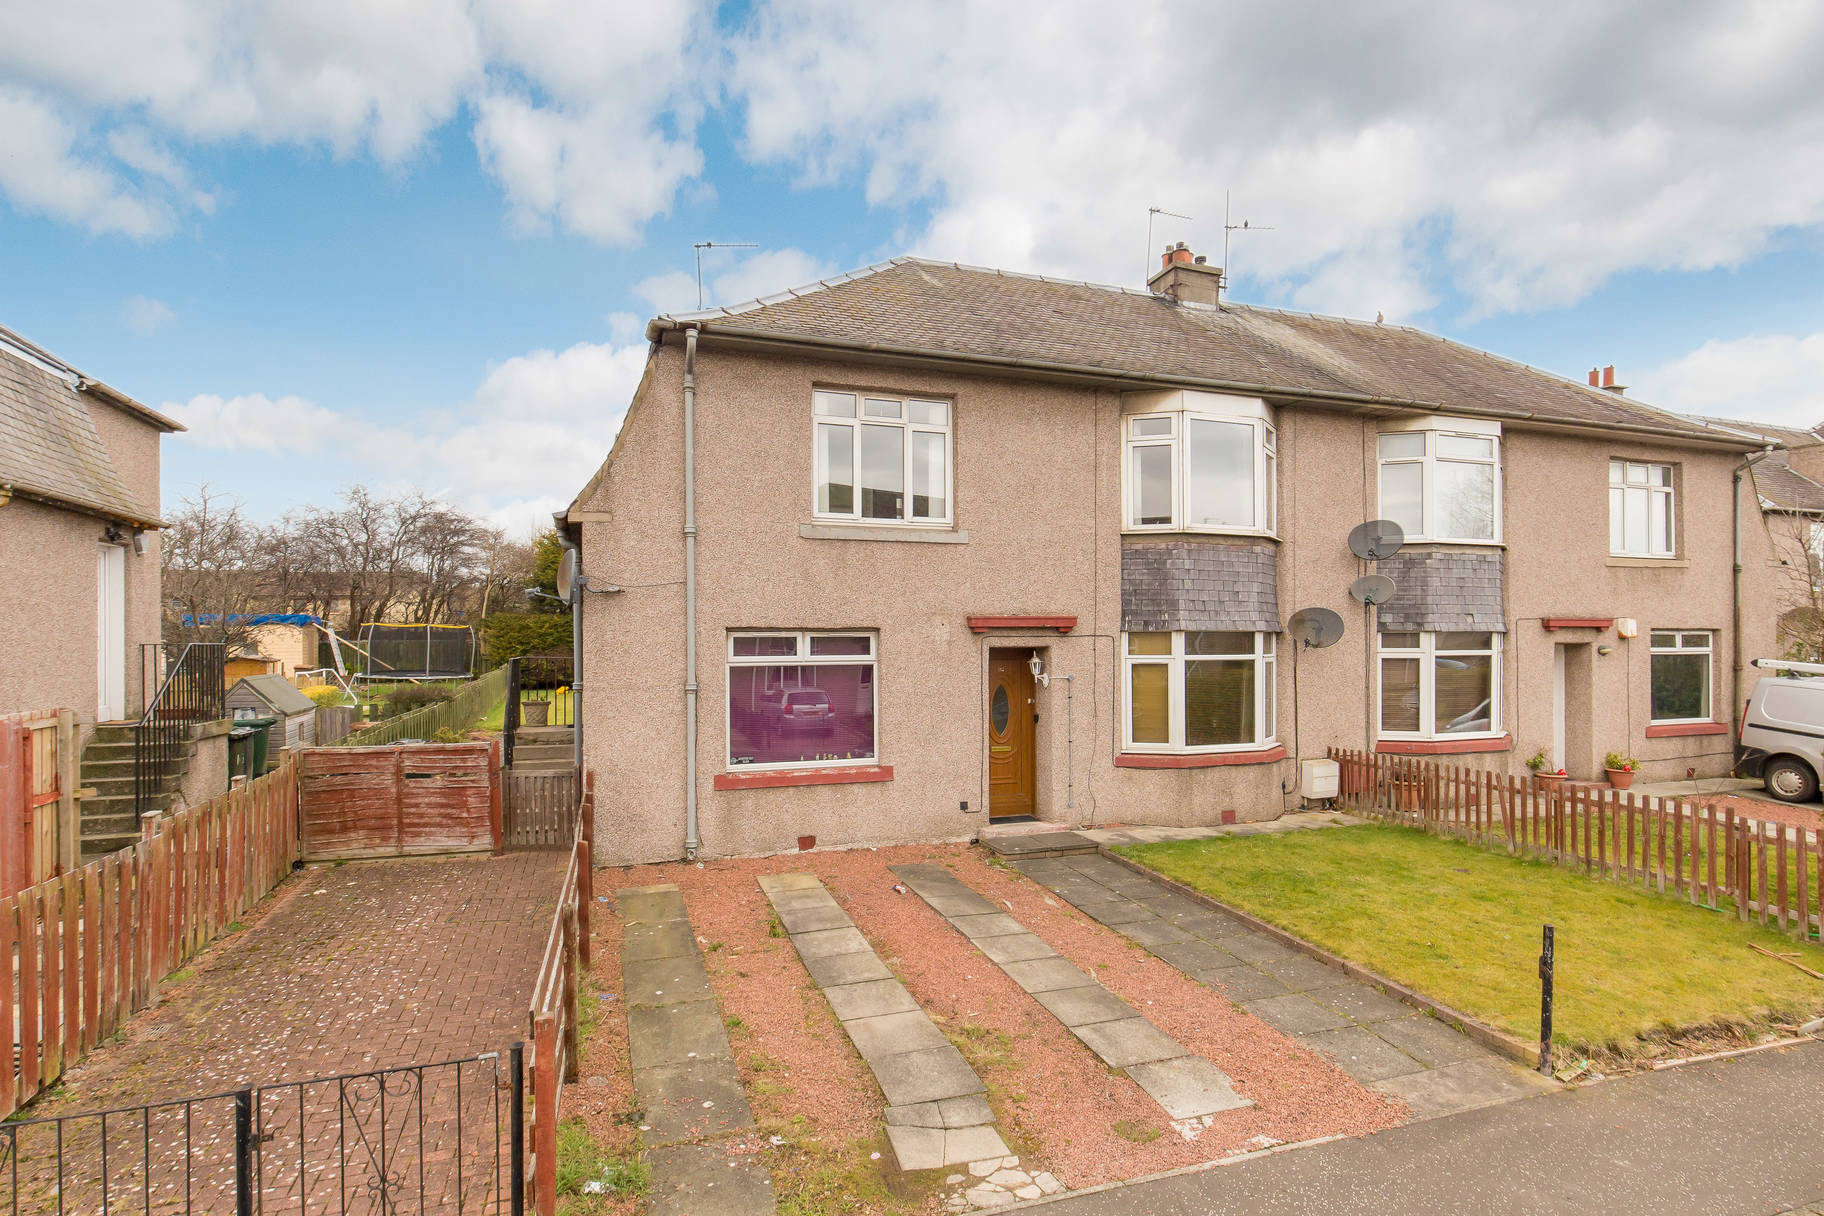 161 Crewe Road West, Edinburgh, EH5 2PF